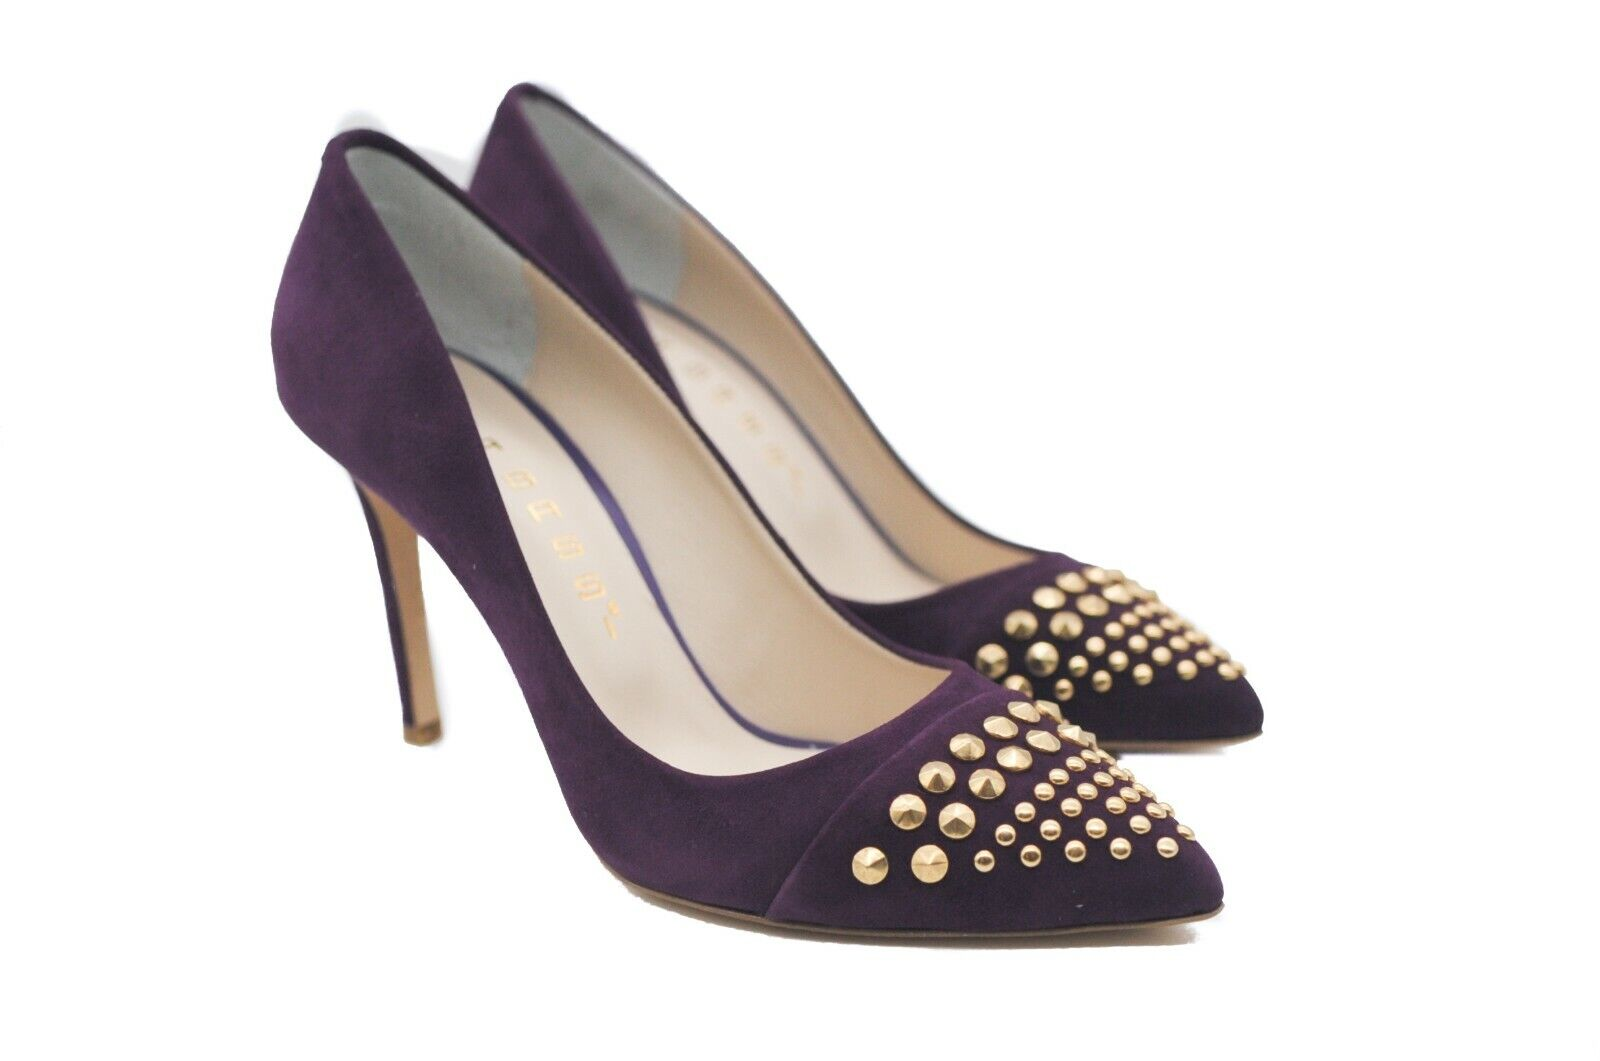 Goody2shoes Ladies' Magenta Court shoes Pumps with gold Studded Toe Detail